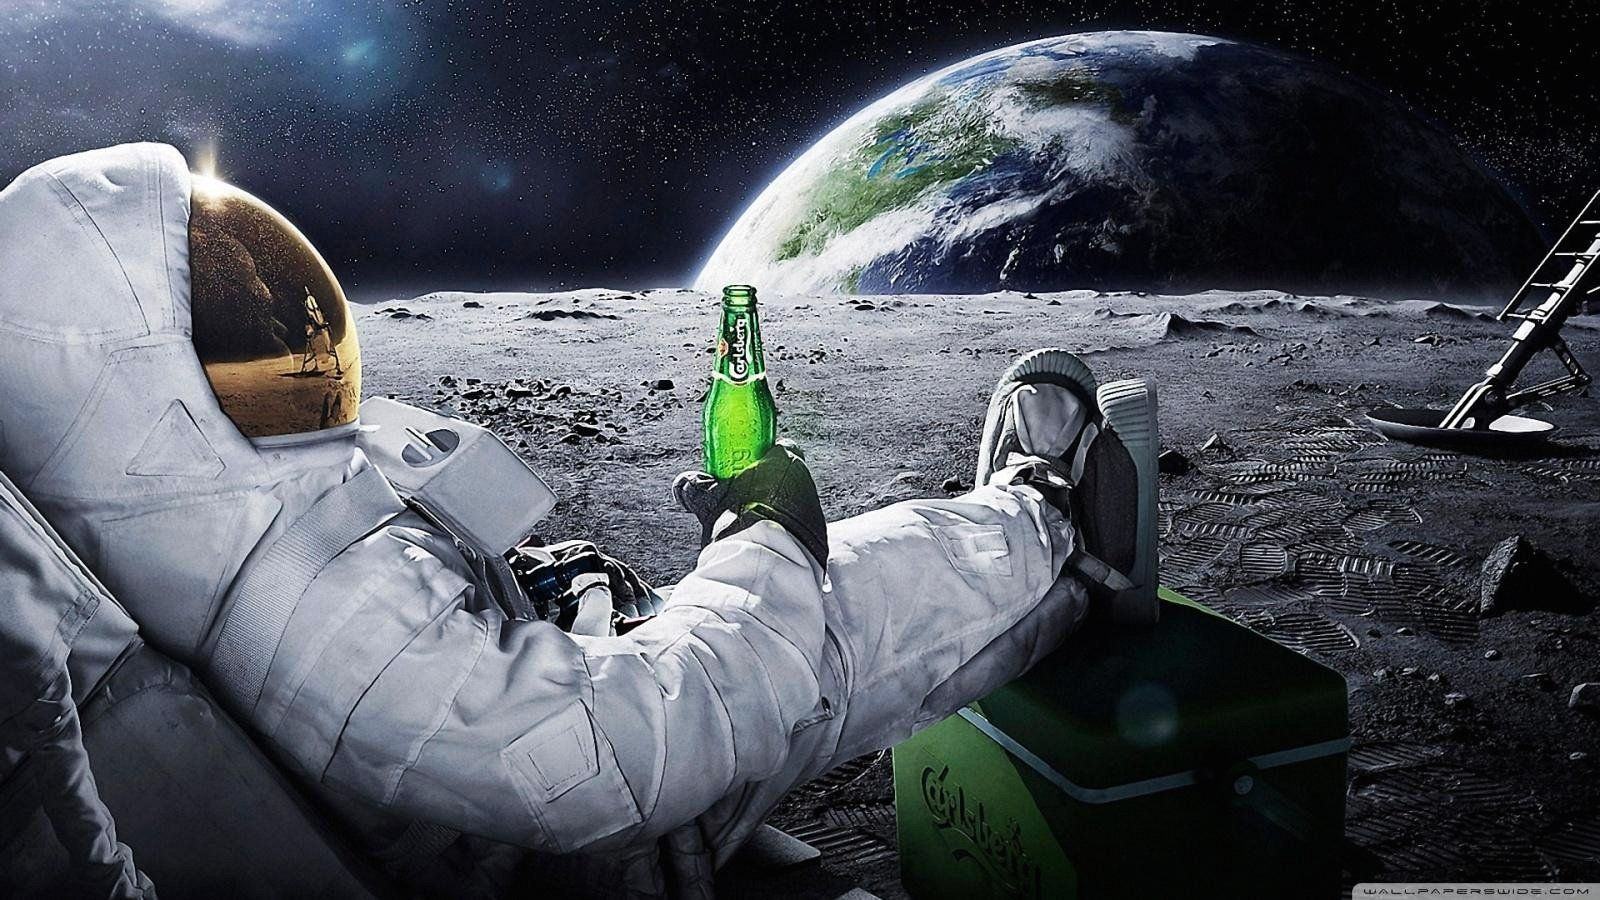 Weird Wallpaper For Android Astronaut wallpaper, Funny